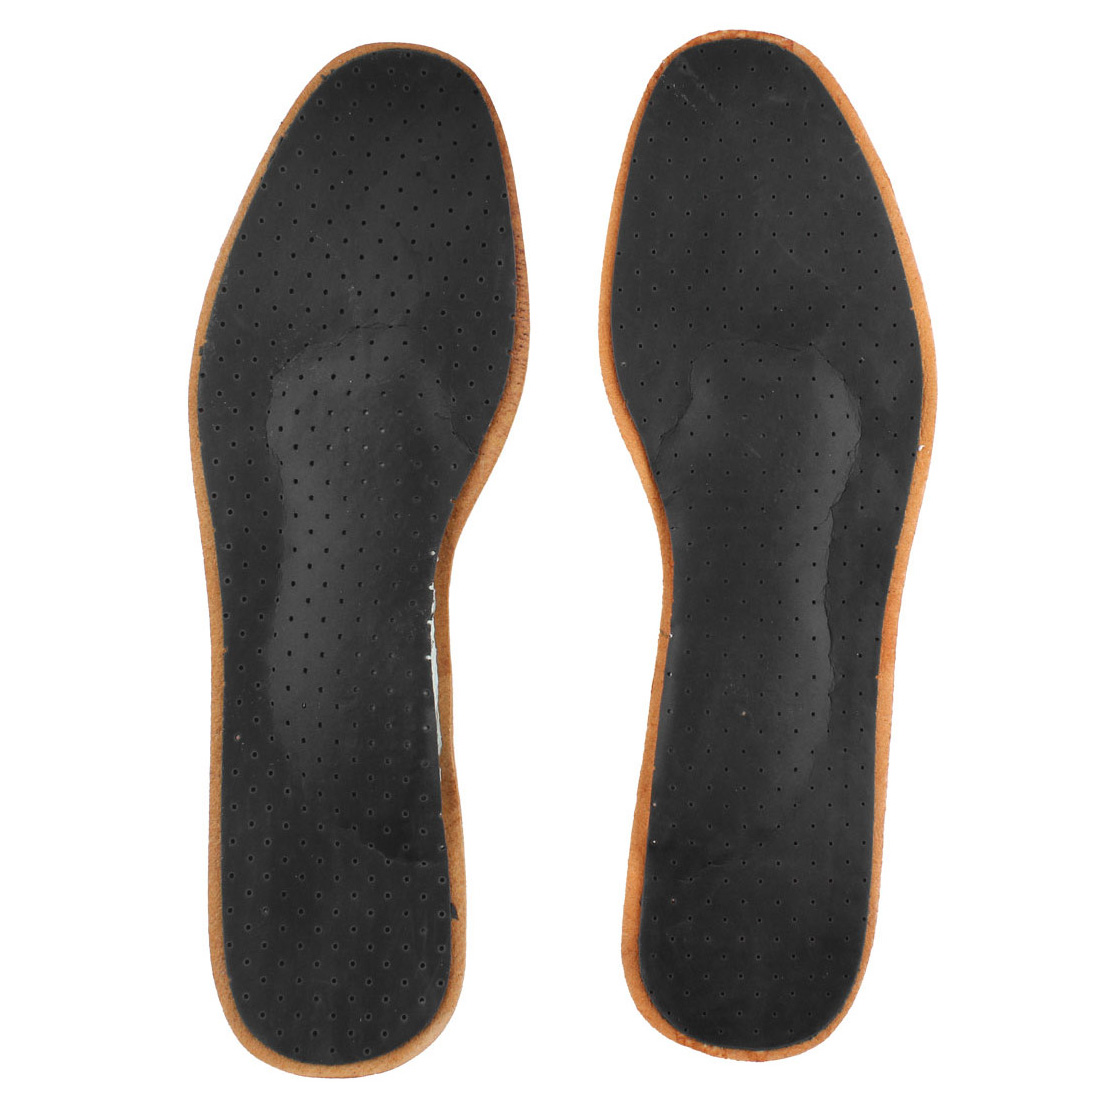 Men Faux Leather Absorbent Full Cushions Breathable Orthotics Shoe Insoles Pair